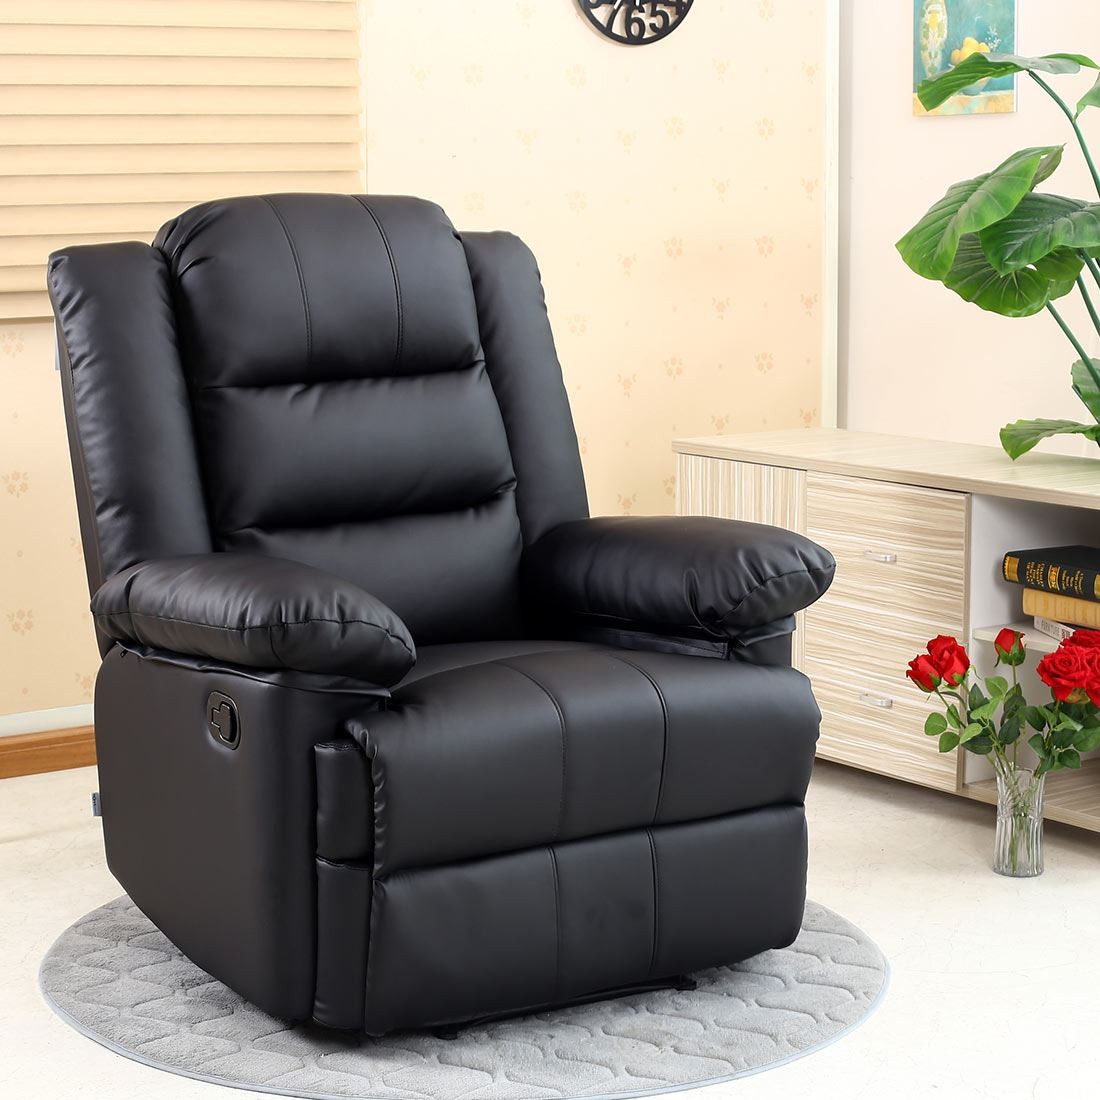 Sofa Deals Belfast Loxley Leather Recliner Armchair Sofa Home Lounge Chair